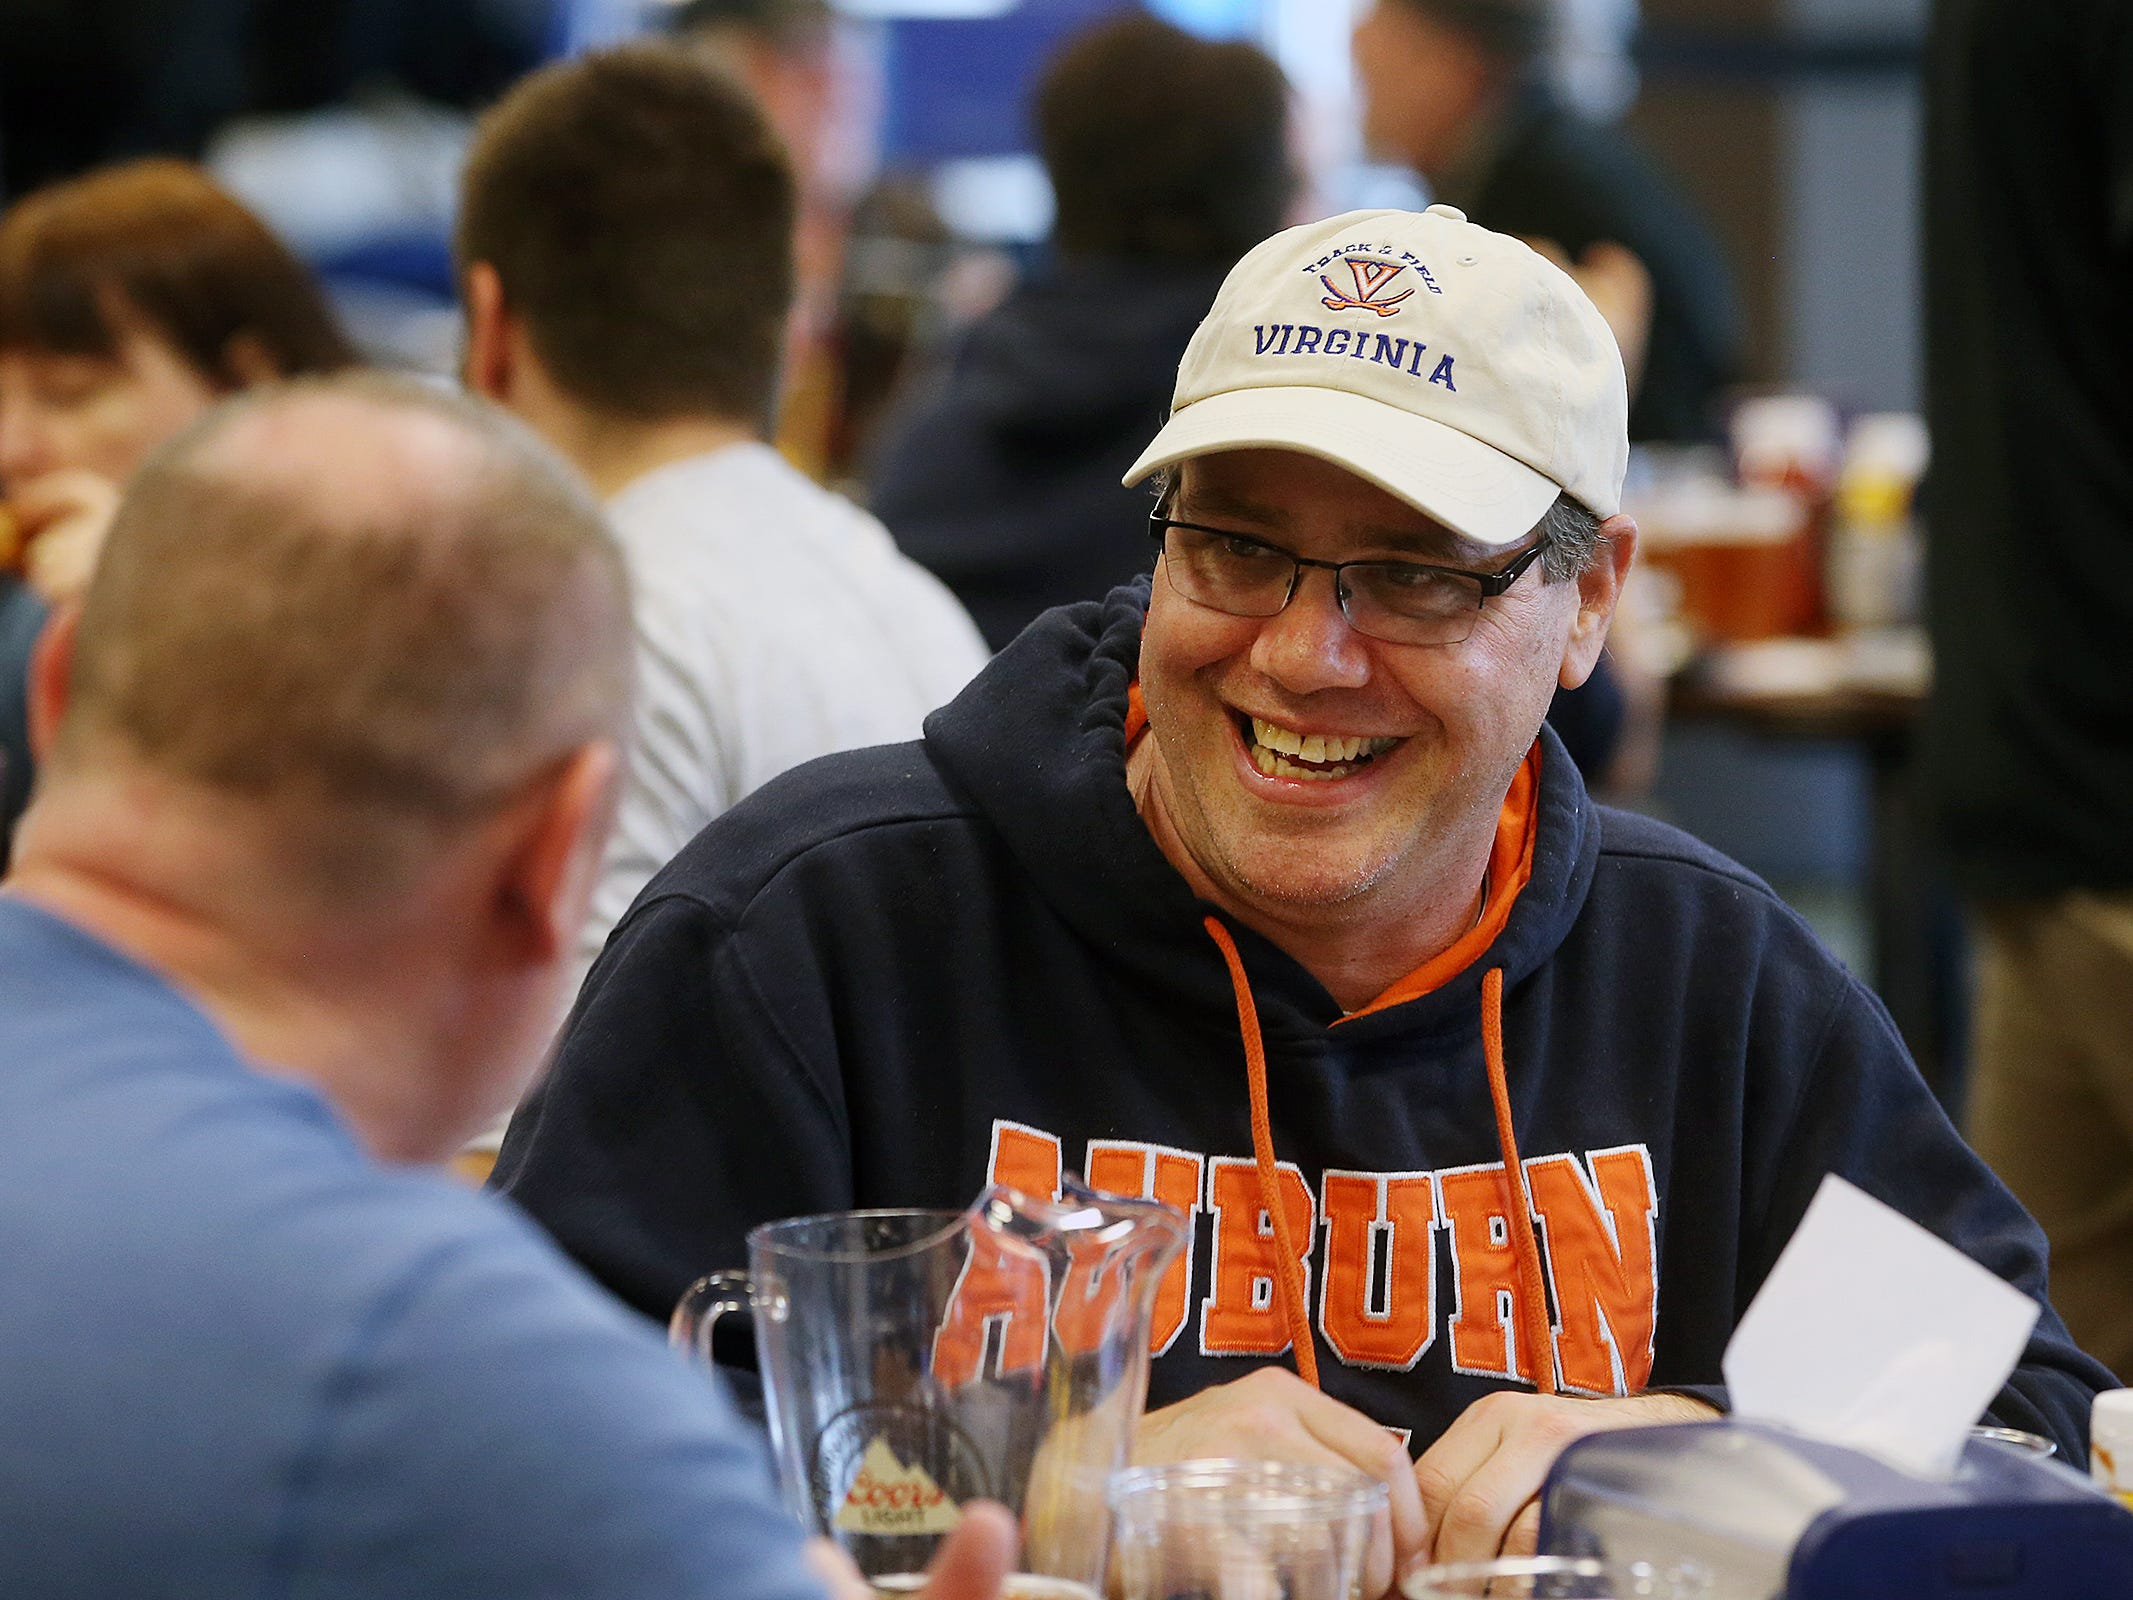 Jack Giannattasio of Colts Neck wears an Auburn sweatshirt as he watches basketball with friends during March Madness, the NCAA men's college basketball tournament, at Monmouth Park's William Hill Race and Sports Bar in Oceanport, NJ Thursday March 21, 2019.